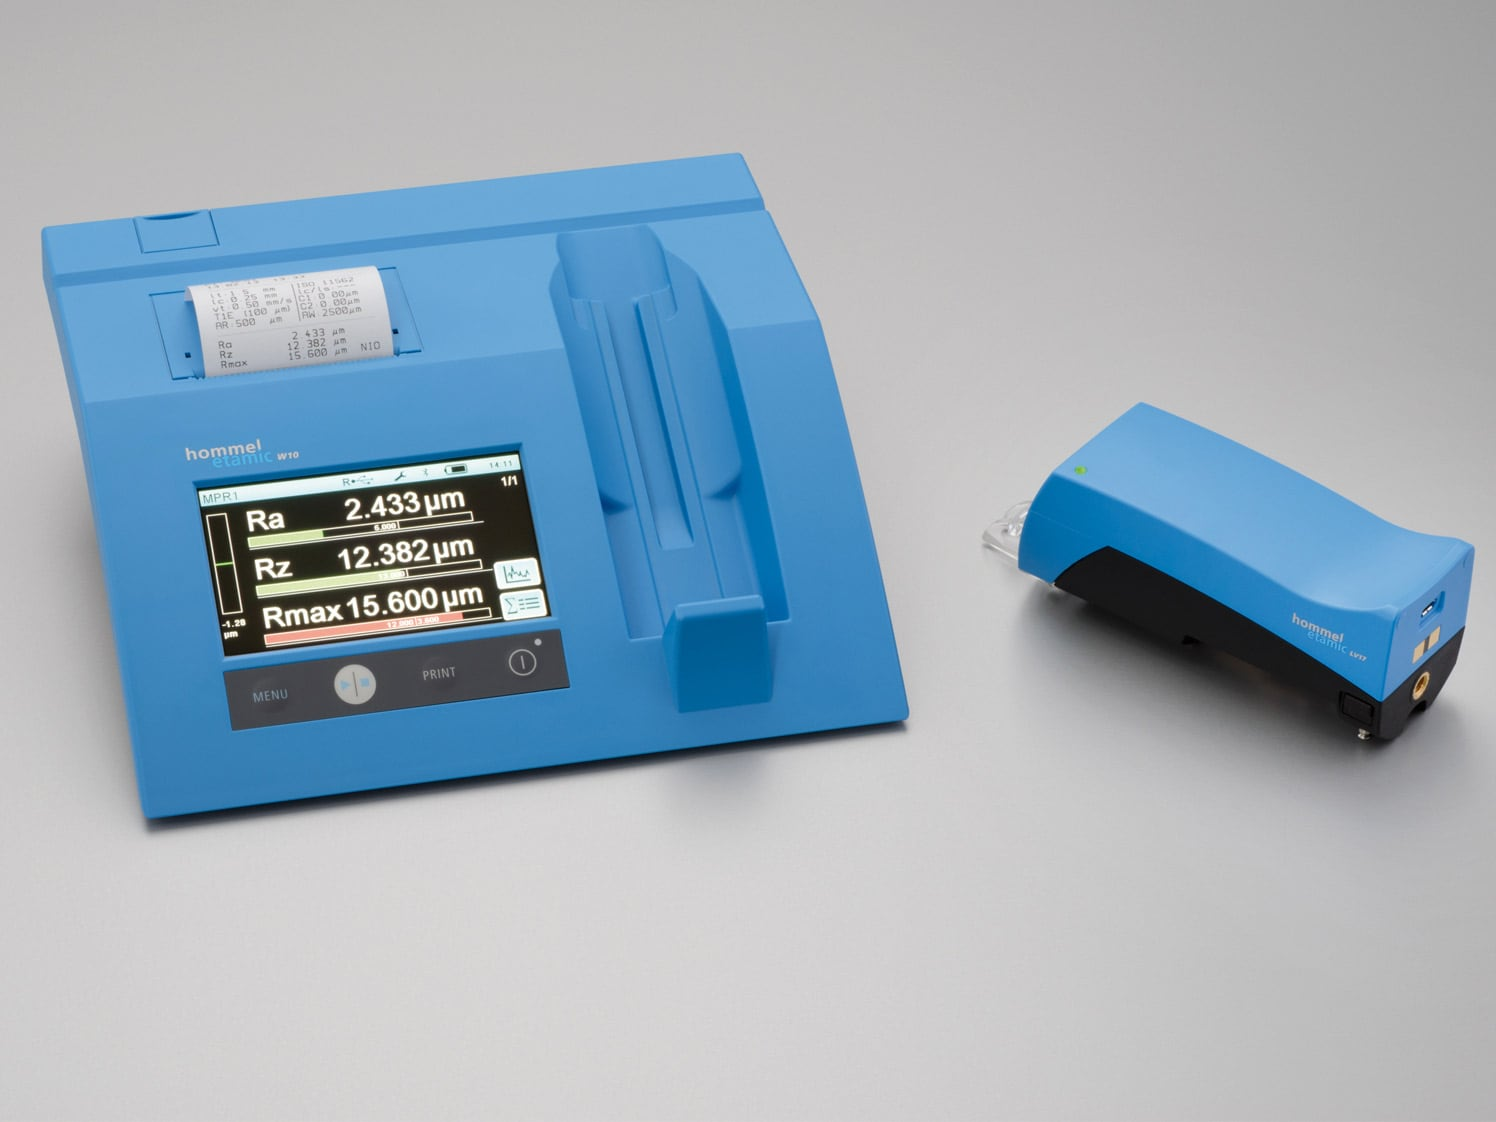 Mobile roughness measurement with the Waveline W10